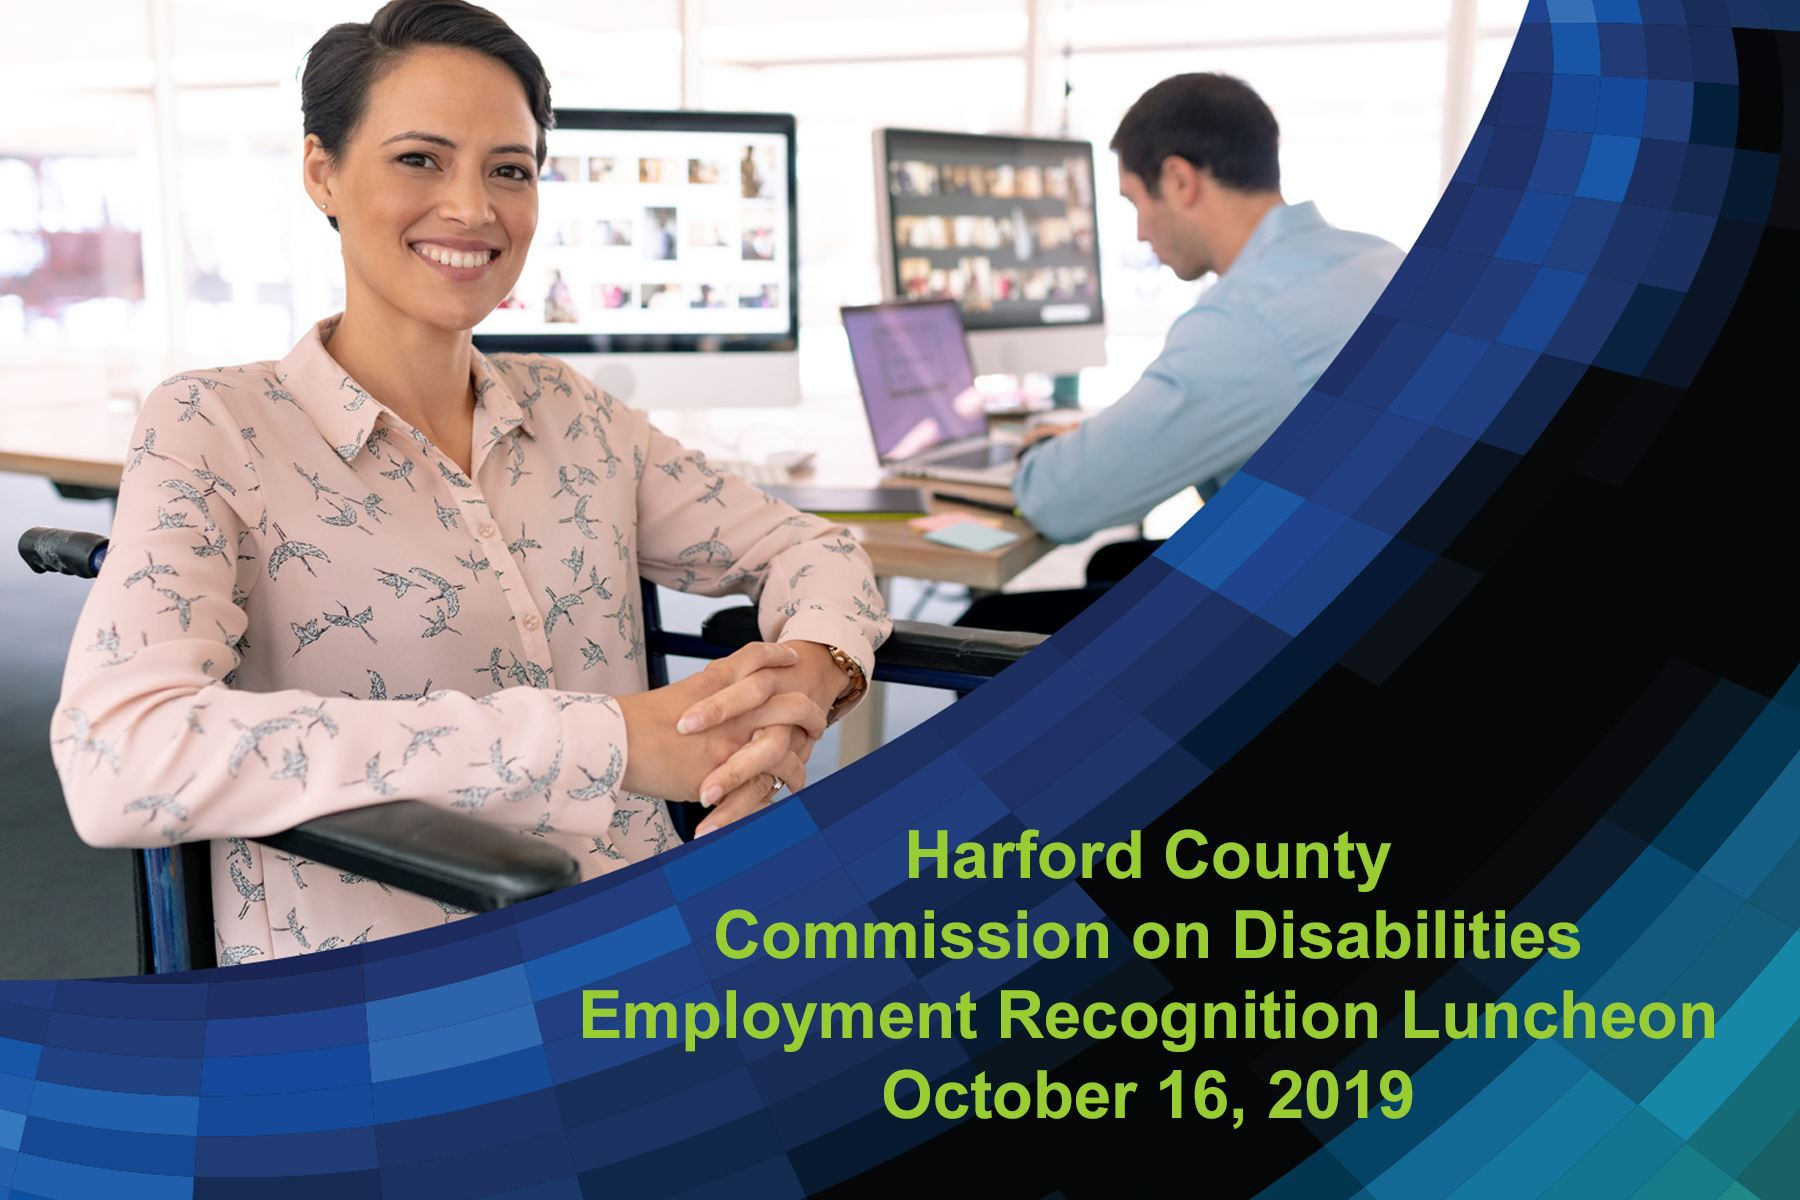 2019 Harford County Commission on Disabilities Annual Employment Recognition Luncheon Photo Gallery